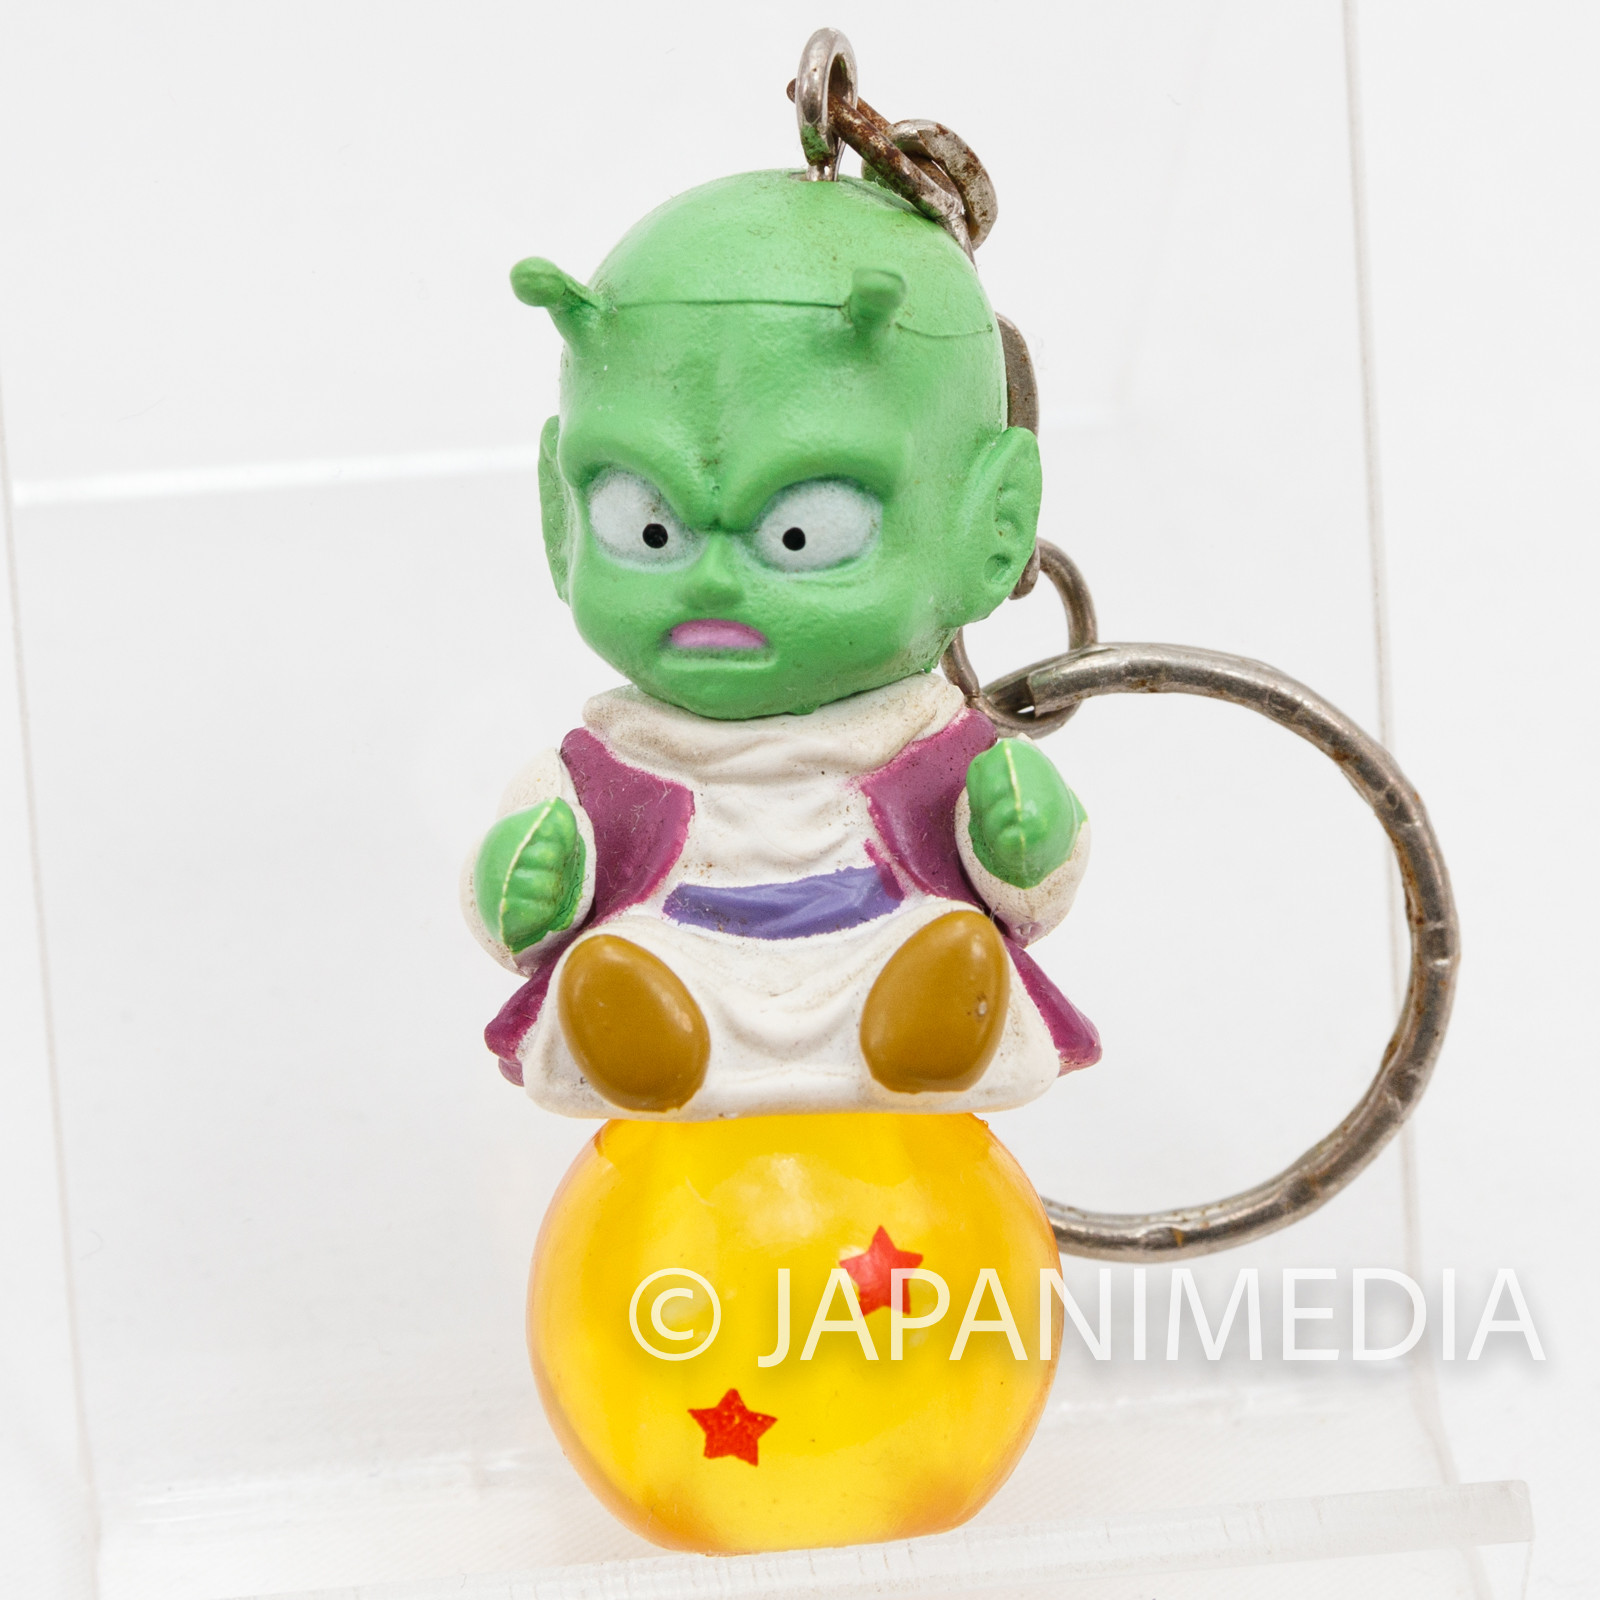 Dragon Ball Z Dende Chara Petit Figure Key Chain JAPAN ANIME MANGA